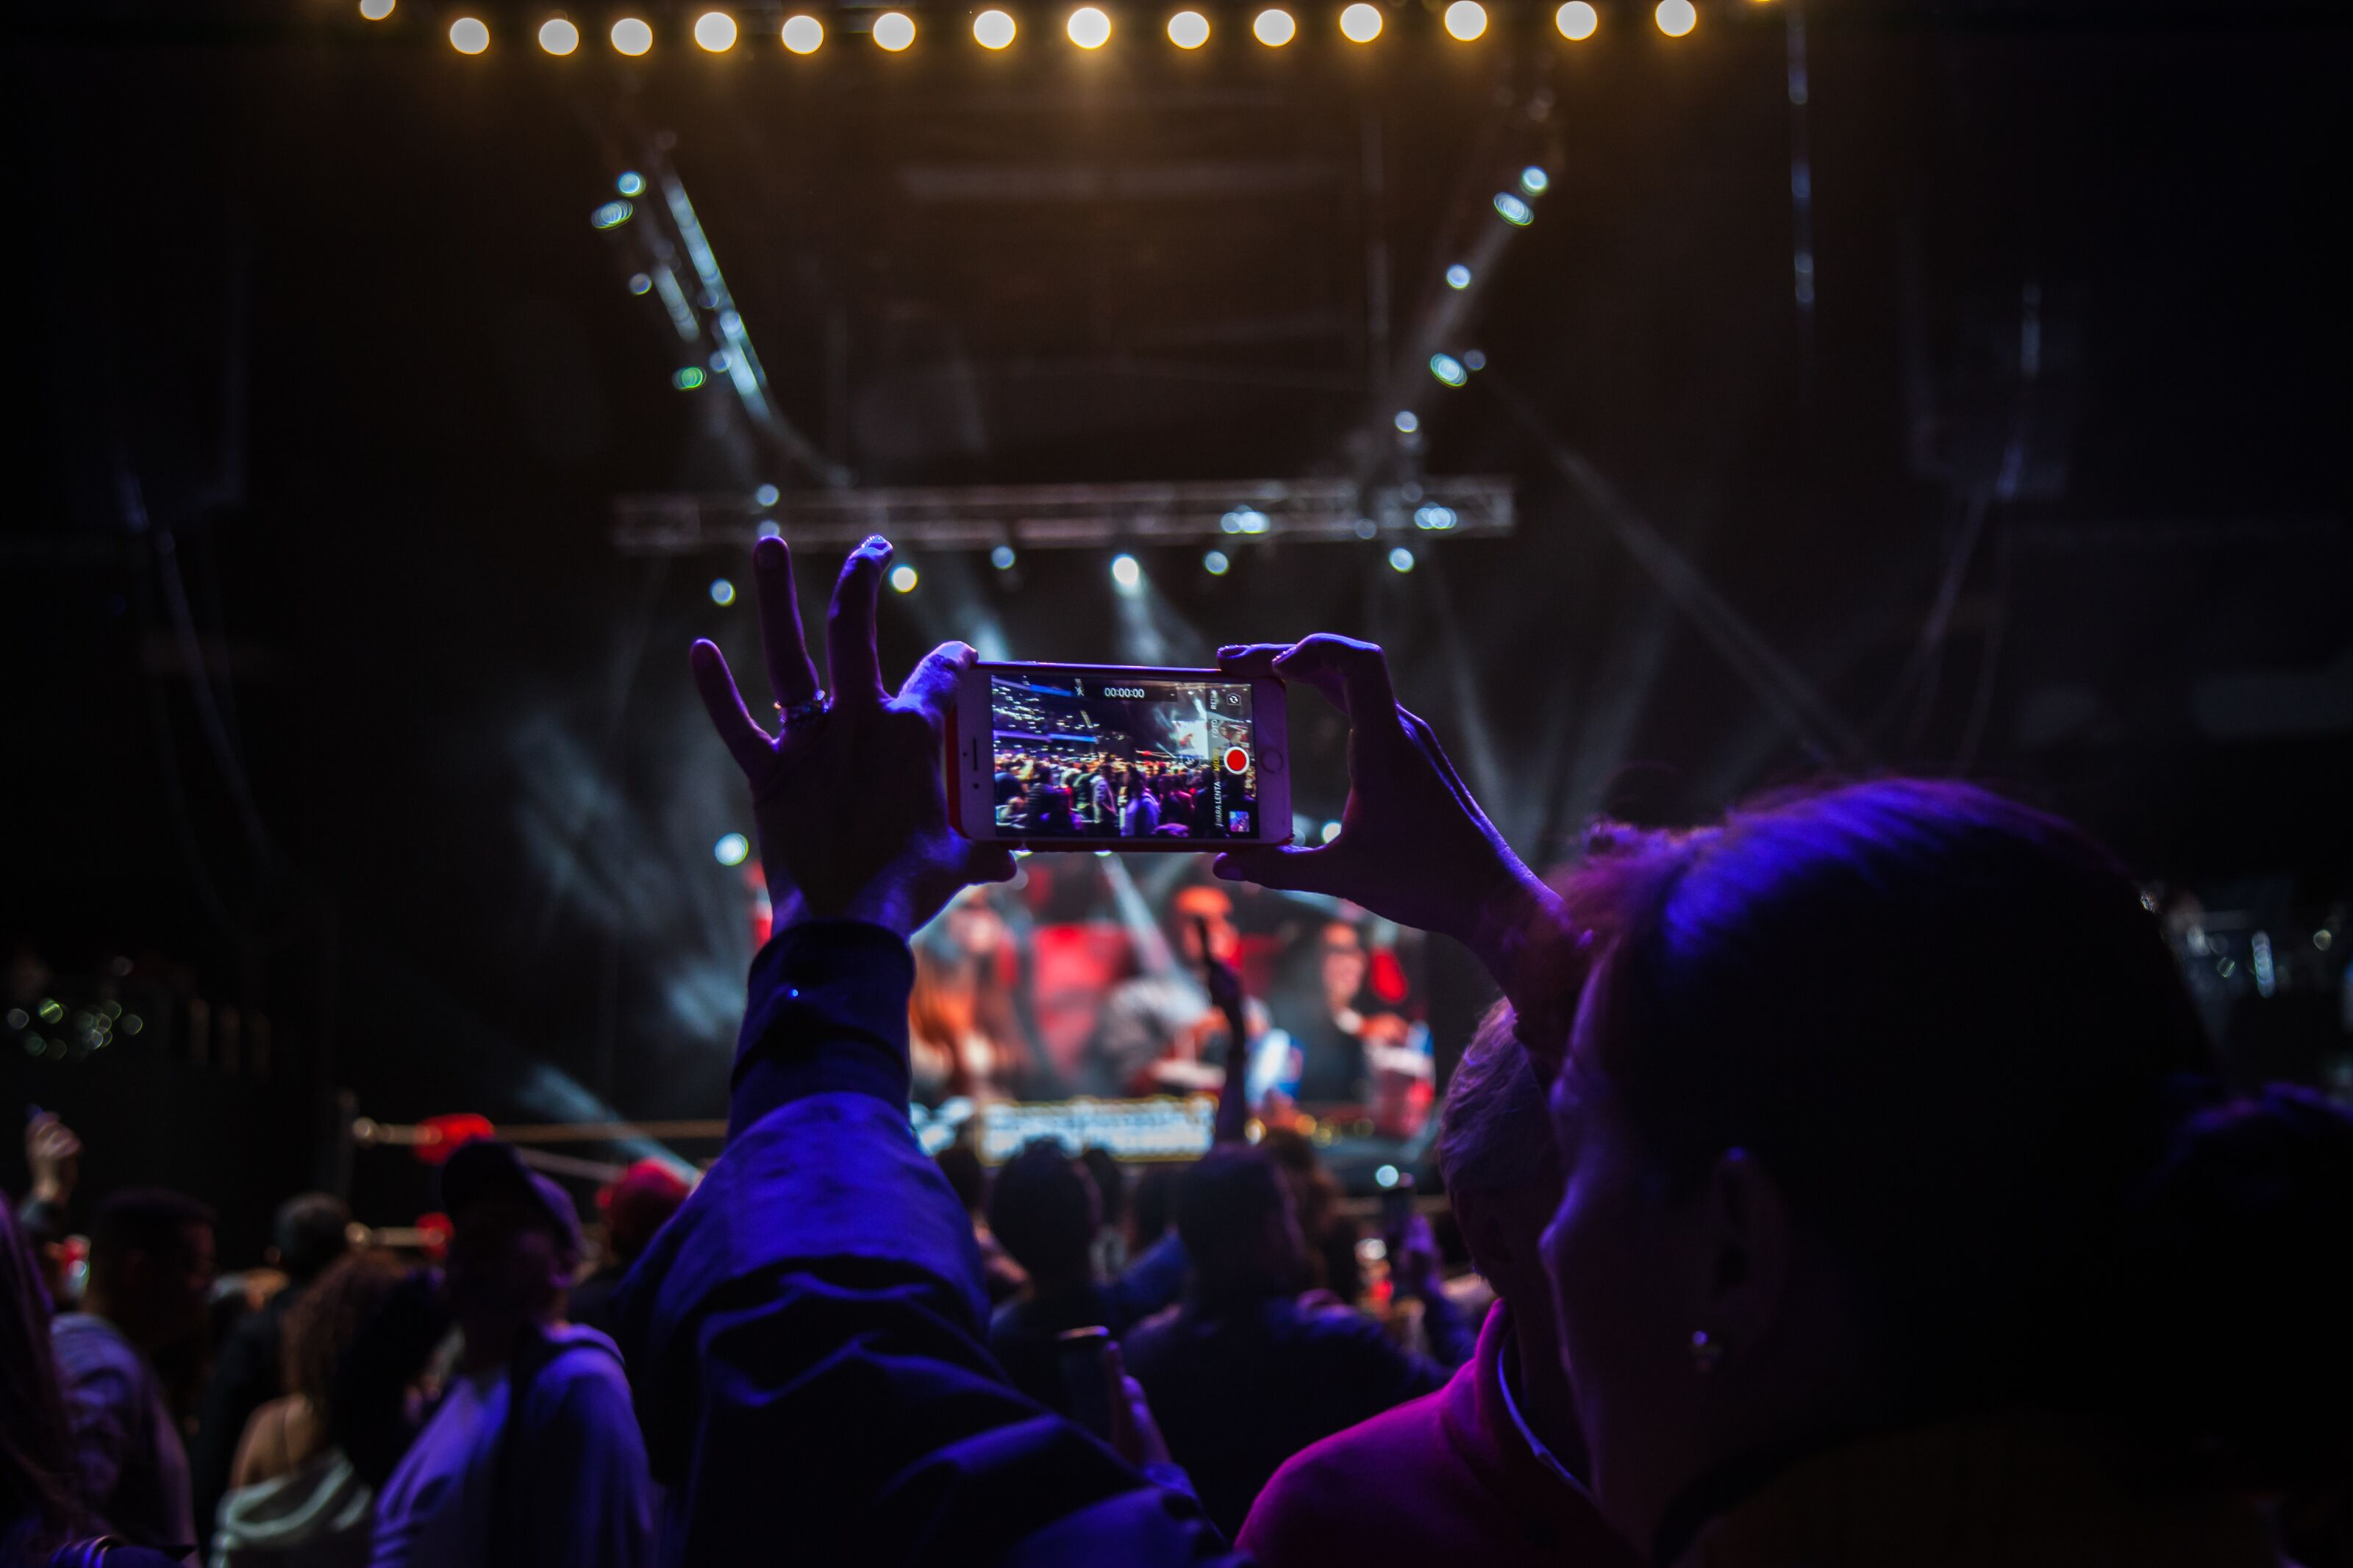 BOGOTA, COLOMBIA - NOVEMBER 16: A fan taking a picture with her phone during an AAA World Wide Wrestling match on November 16, 2018 in Bogota, Colombia. (Photo by Juancho Torres/Getty Images)